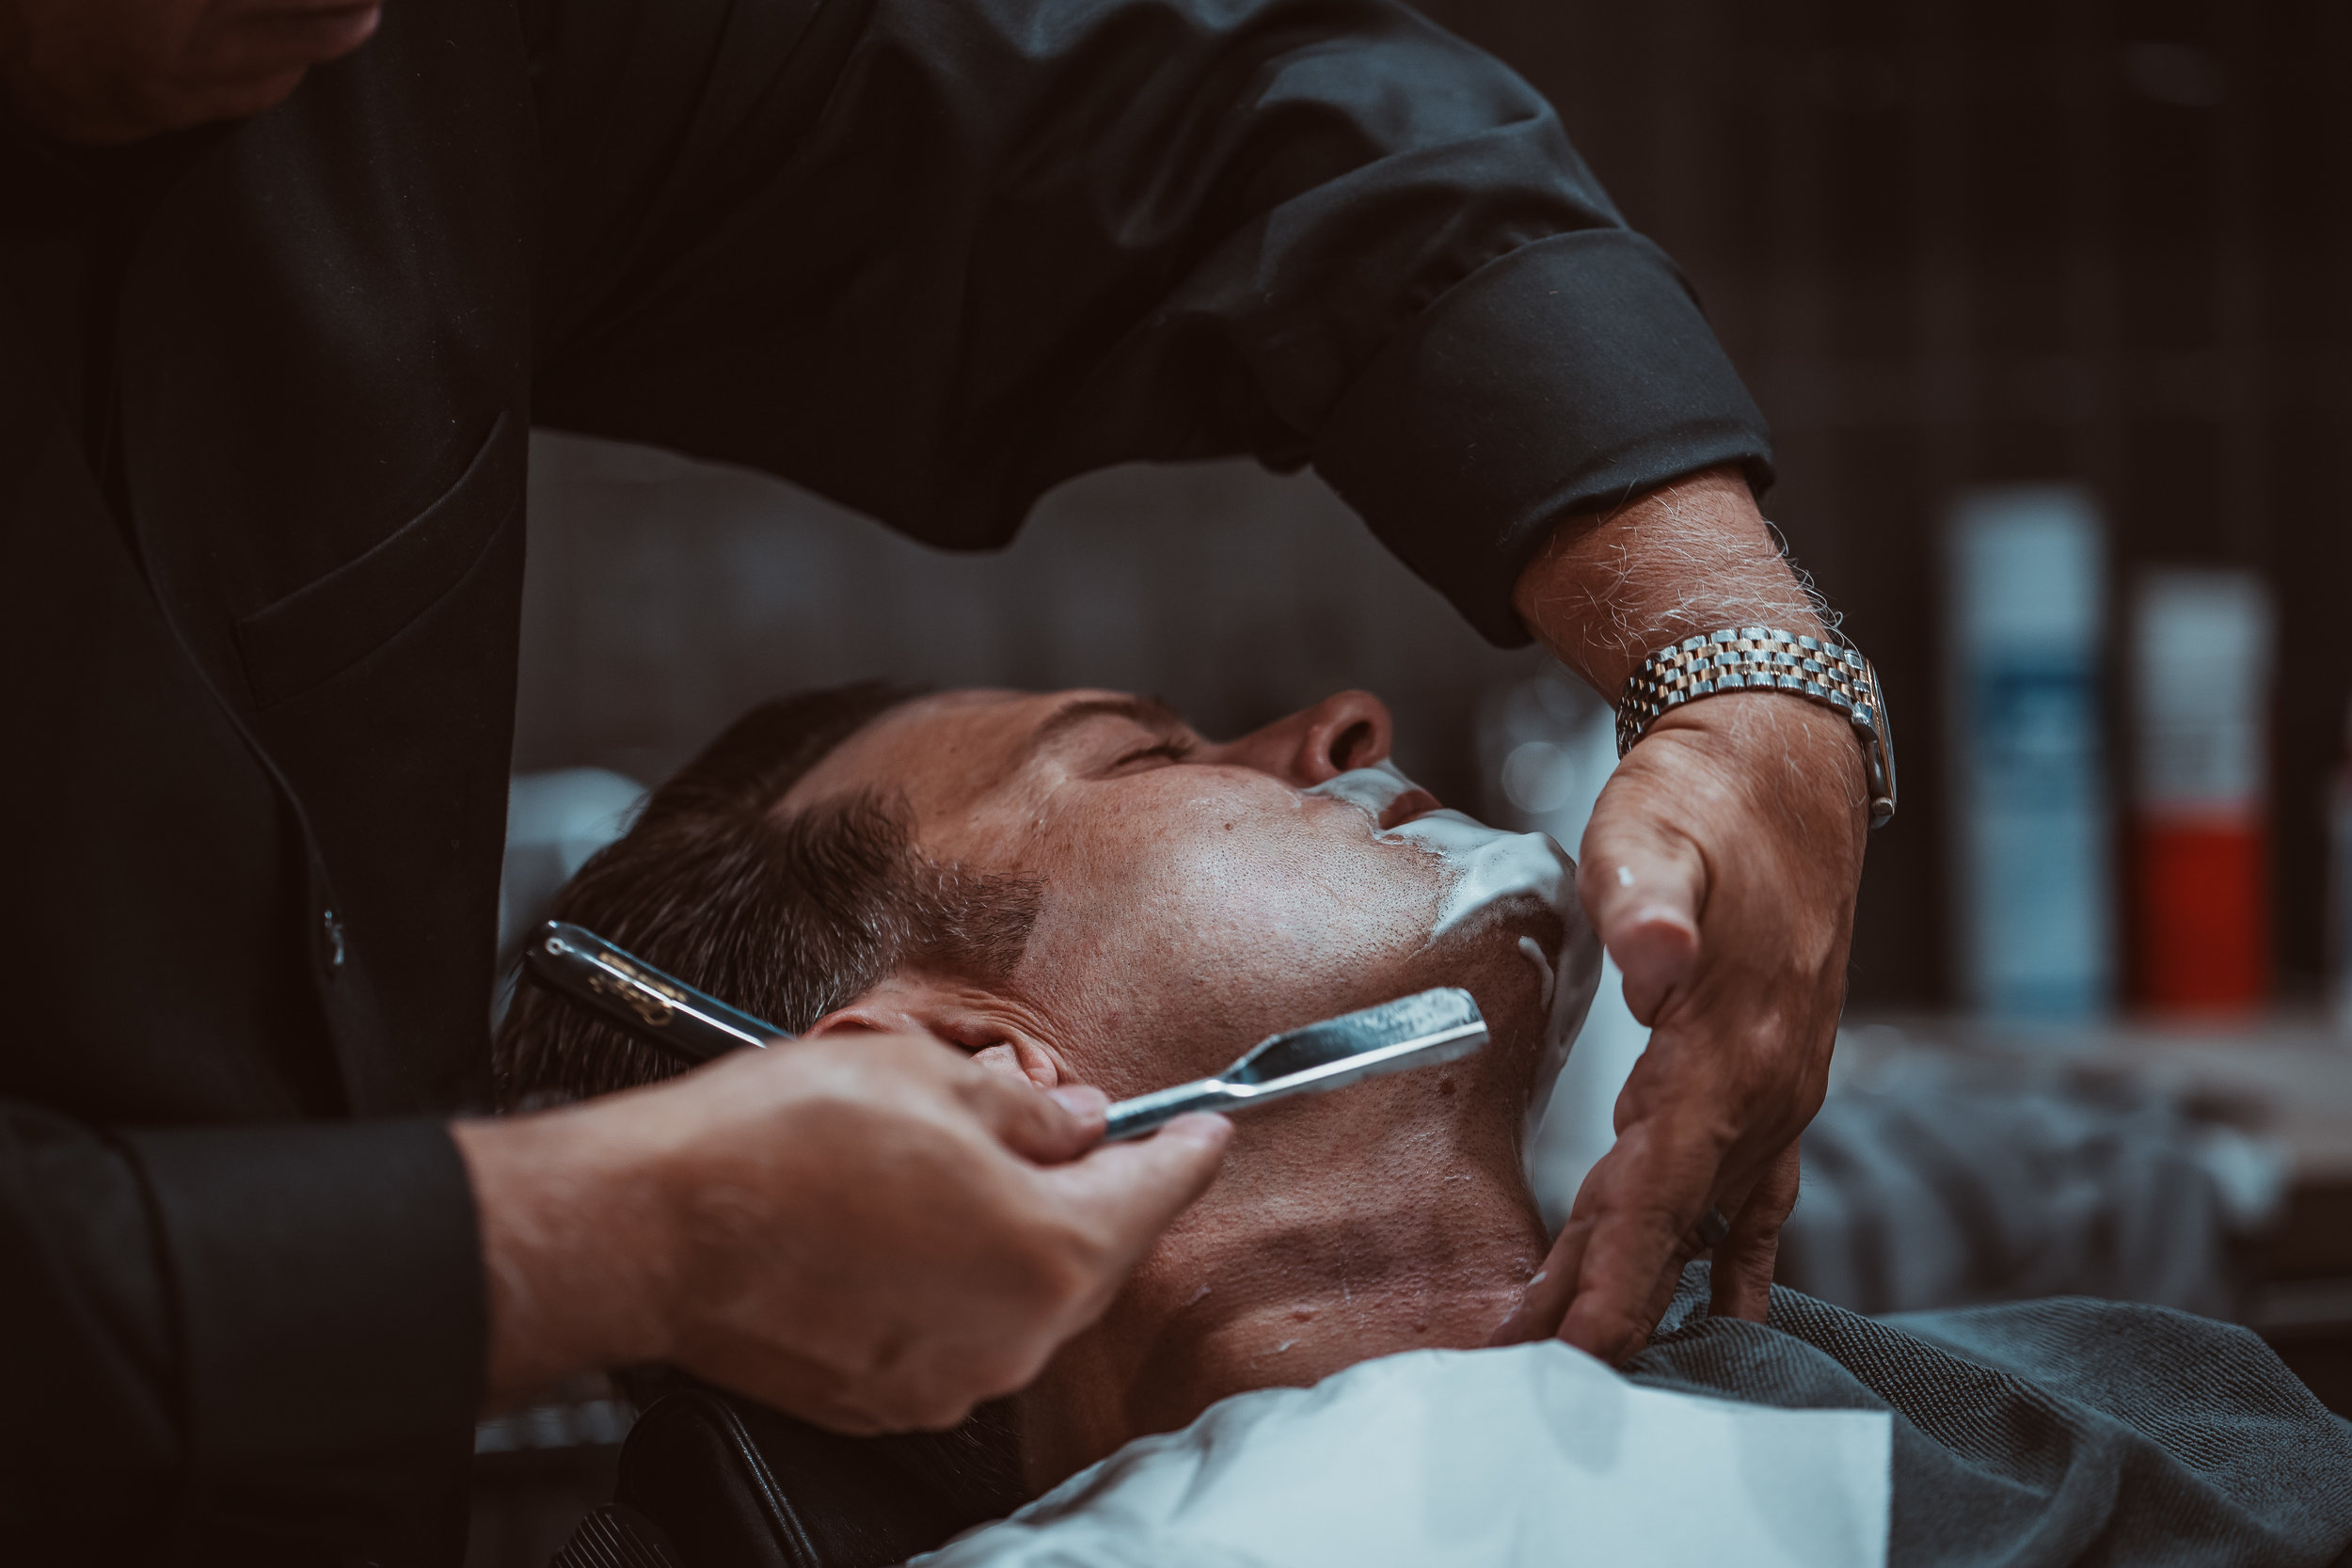 Stylists & BarbersTraining, tools, techniques—each unique -